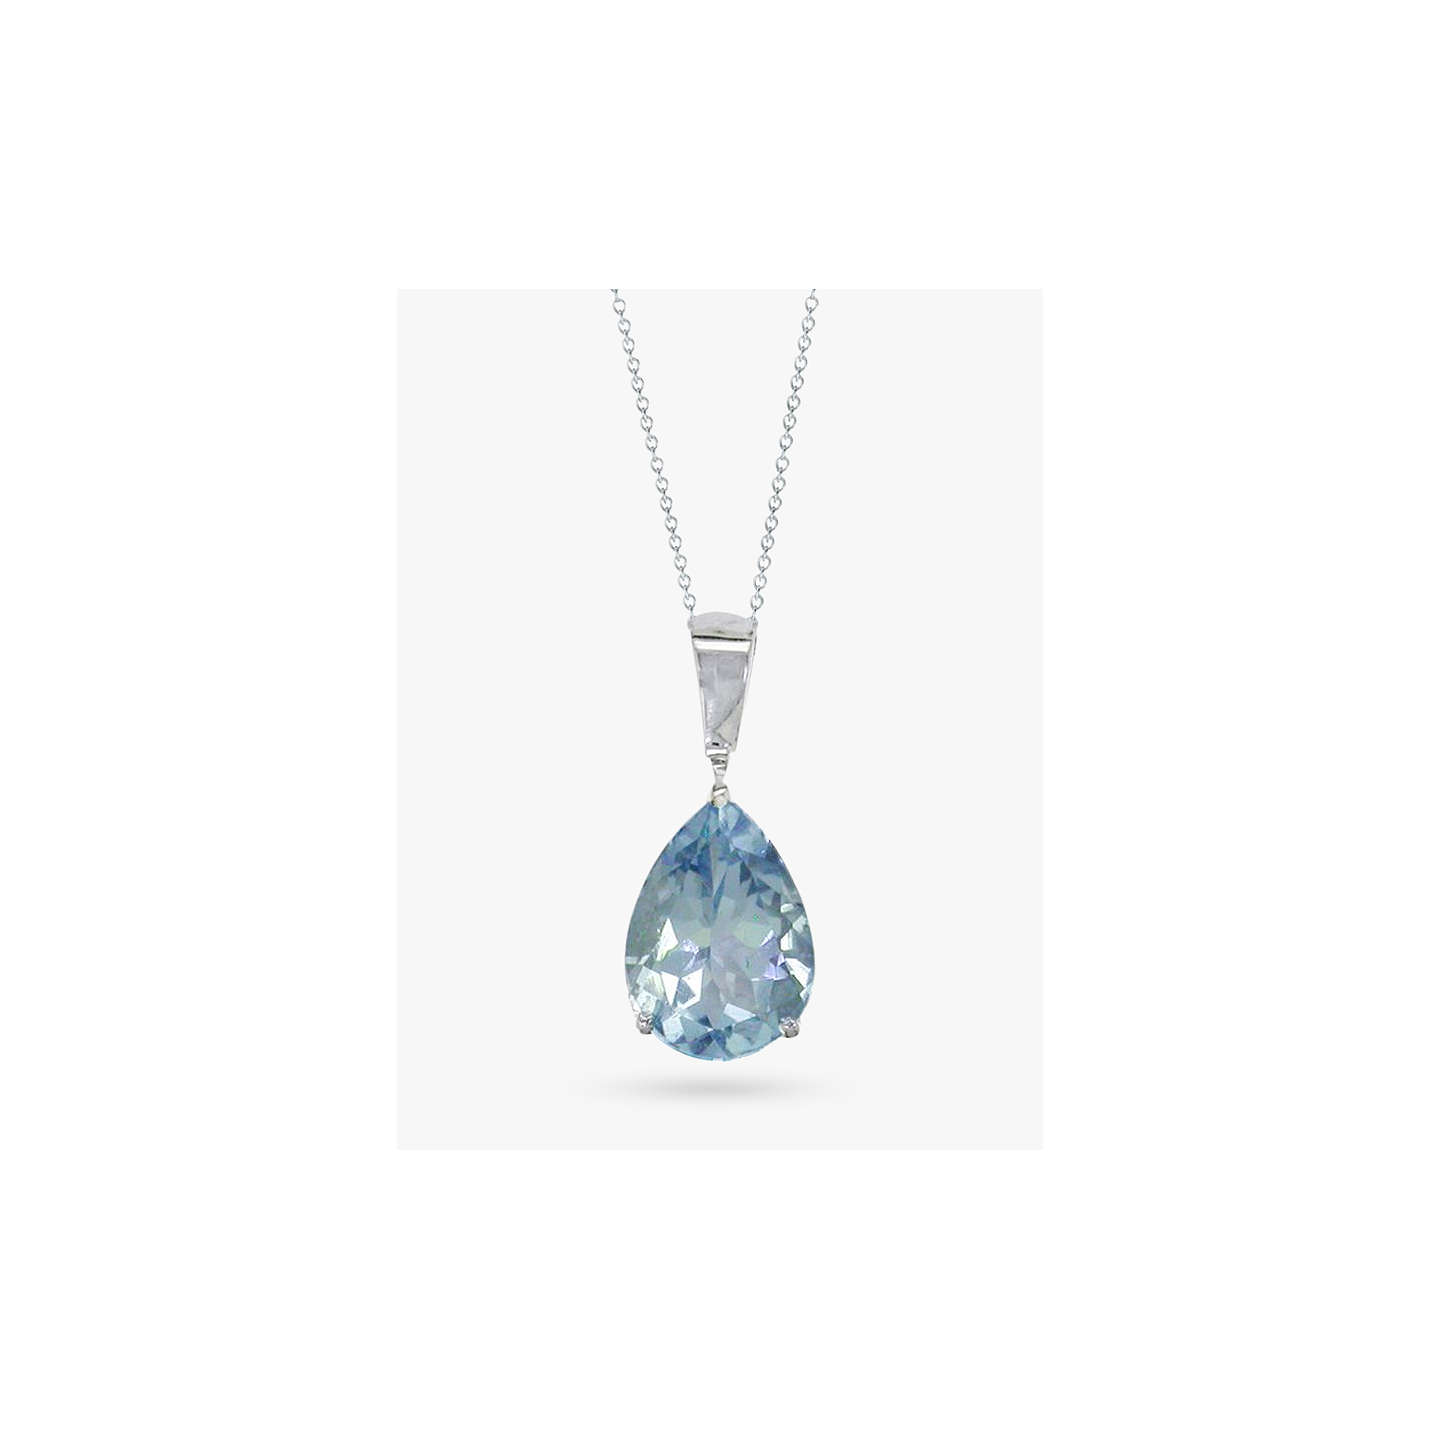 co tiffany teardrop id ed necklaces pendants fmt fit pendant silver hei elsa peretti sterling wid constrain in jewelry